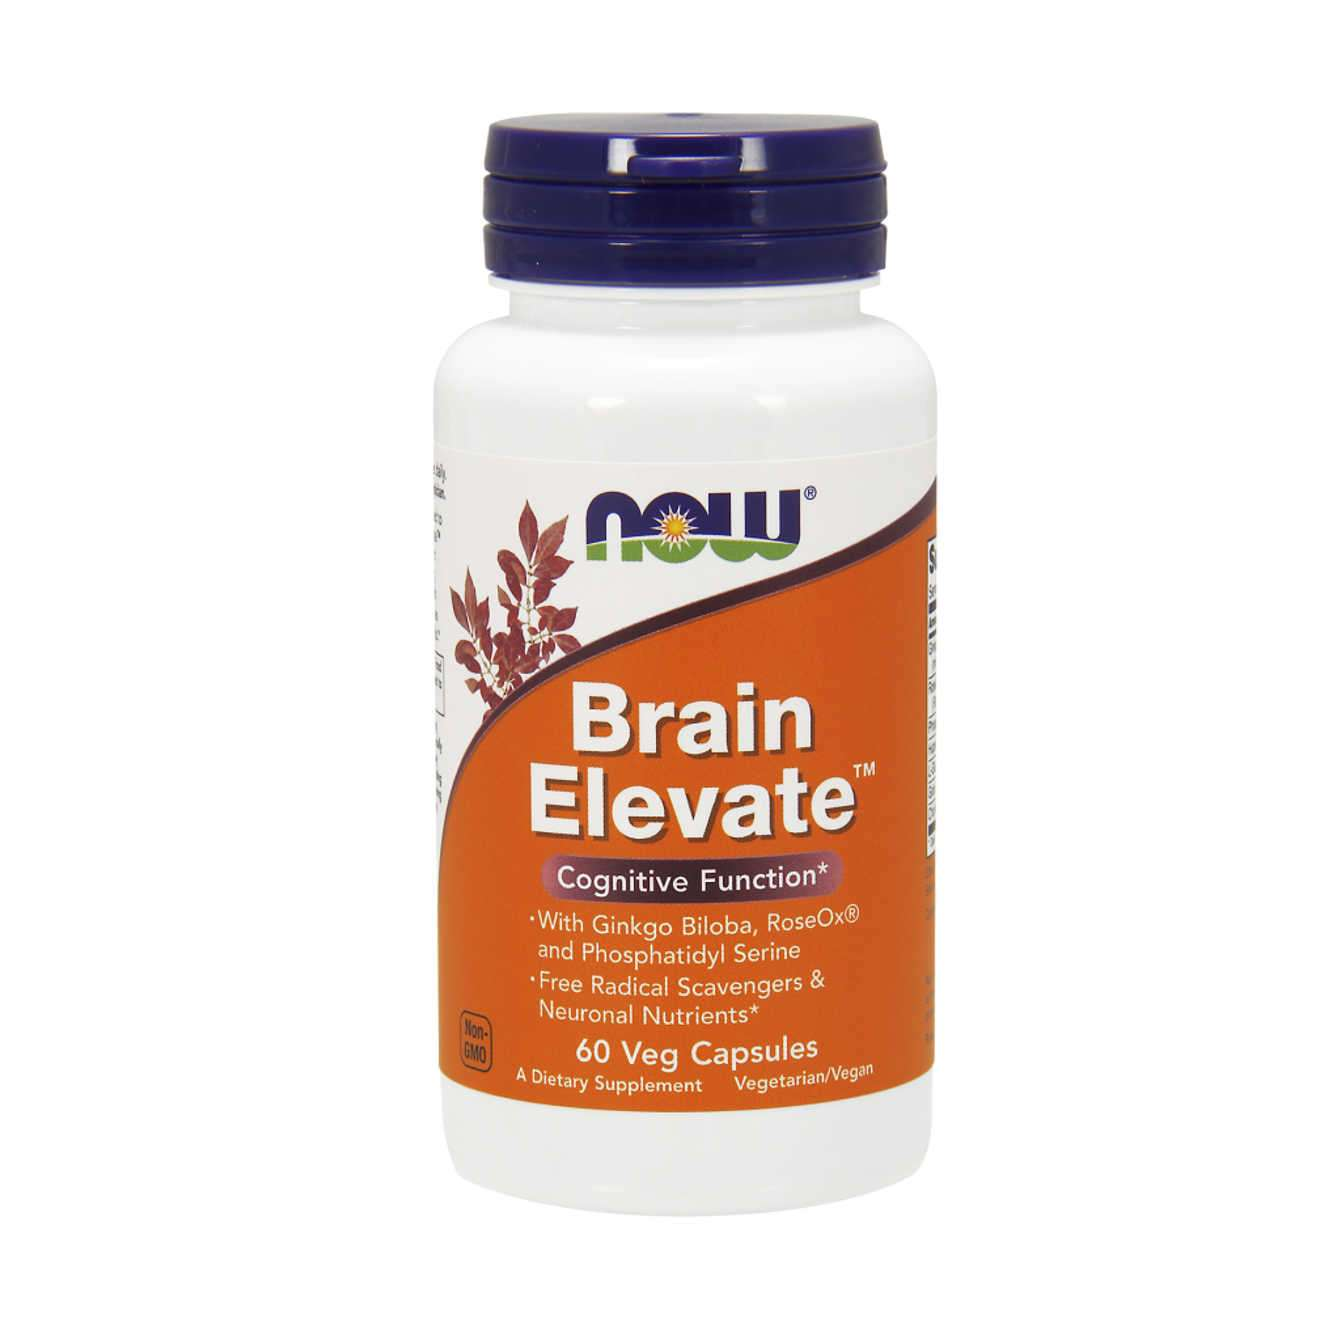 BRAIN ELEVATE FORMULA - 60 veg caps